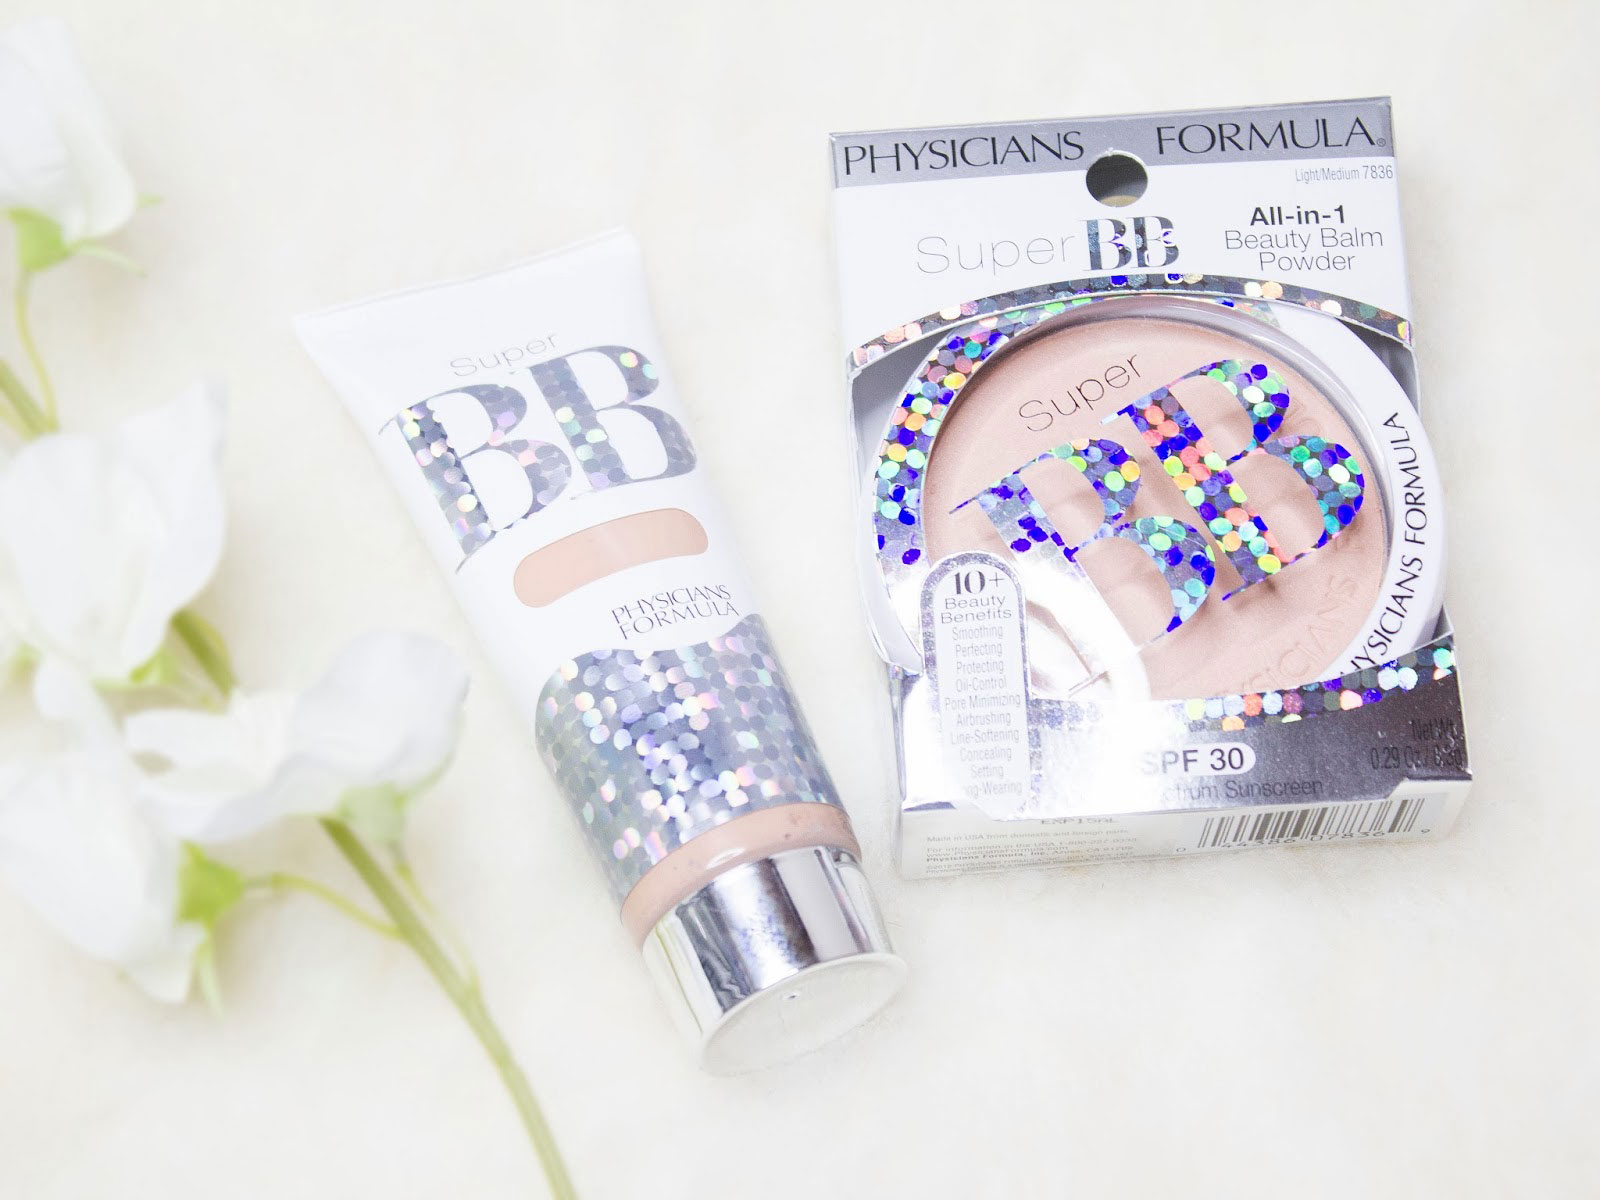 Physicians Formula Super BB All-in-1 Beauty Balm Powder SPF 30 Review